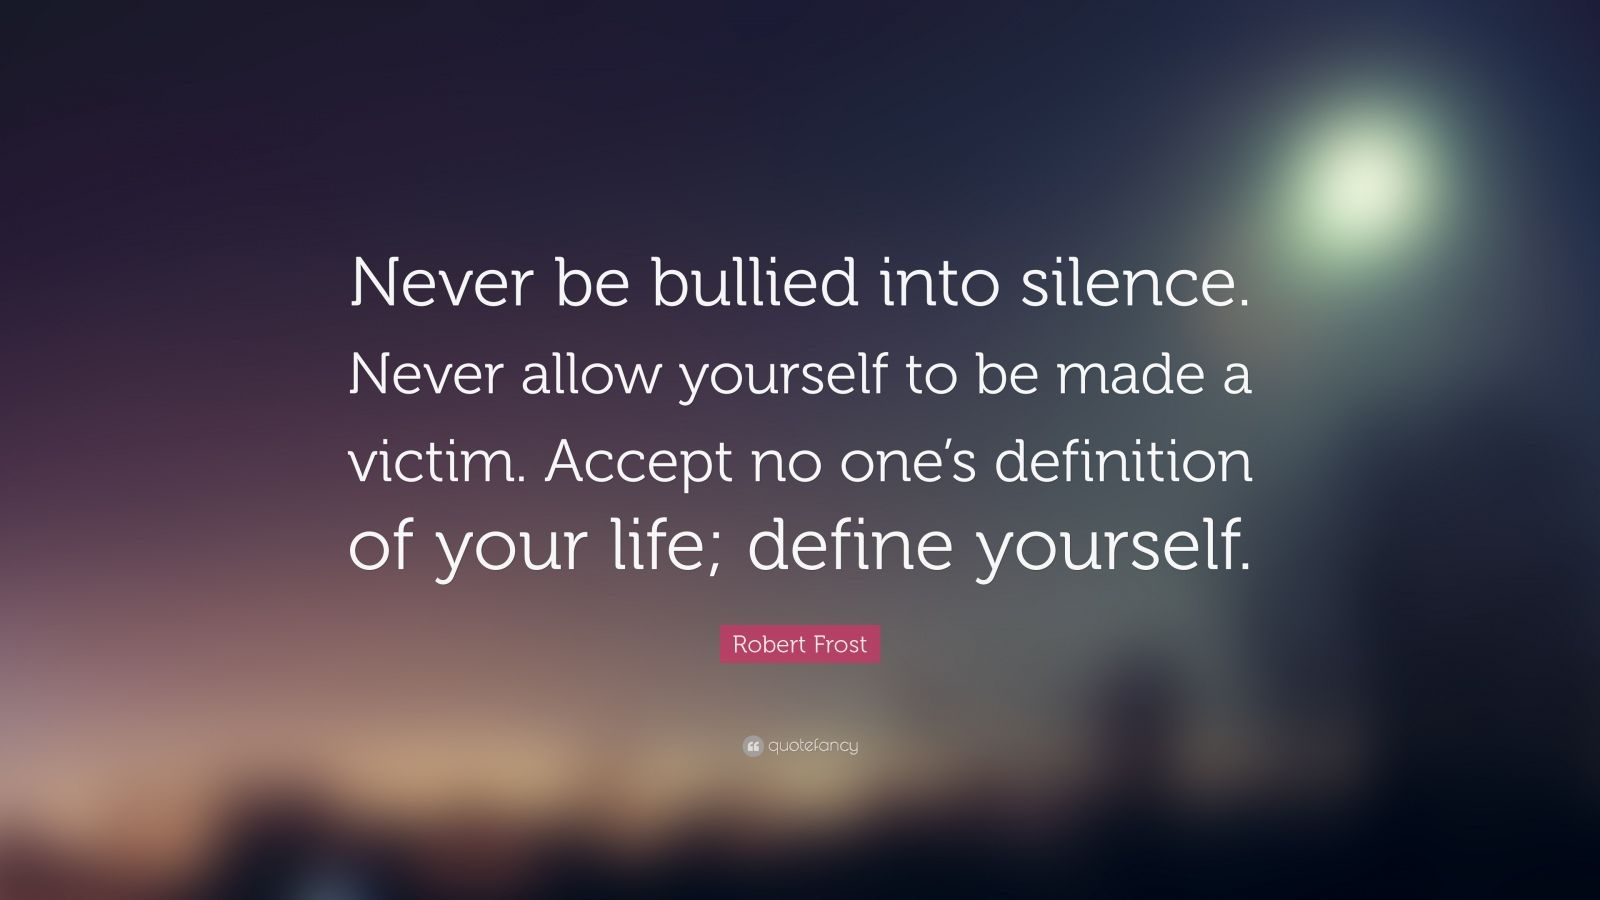 "Robert Frost Quote: ""Never be bullied into silence. Never allow yourself to be made a victim. Accept no one's definition of your life; define yourself."""